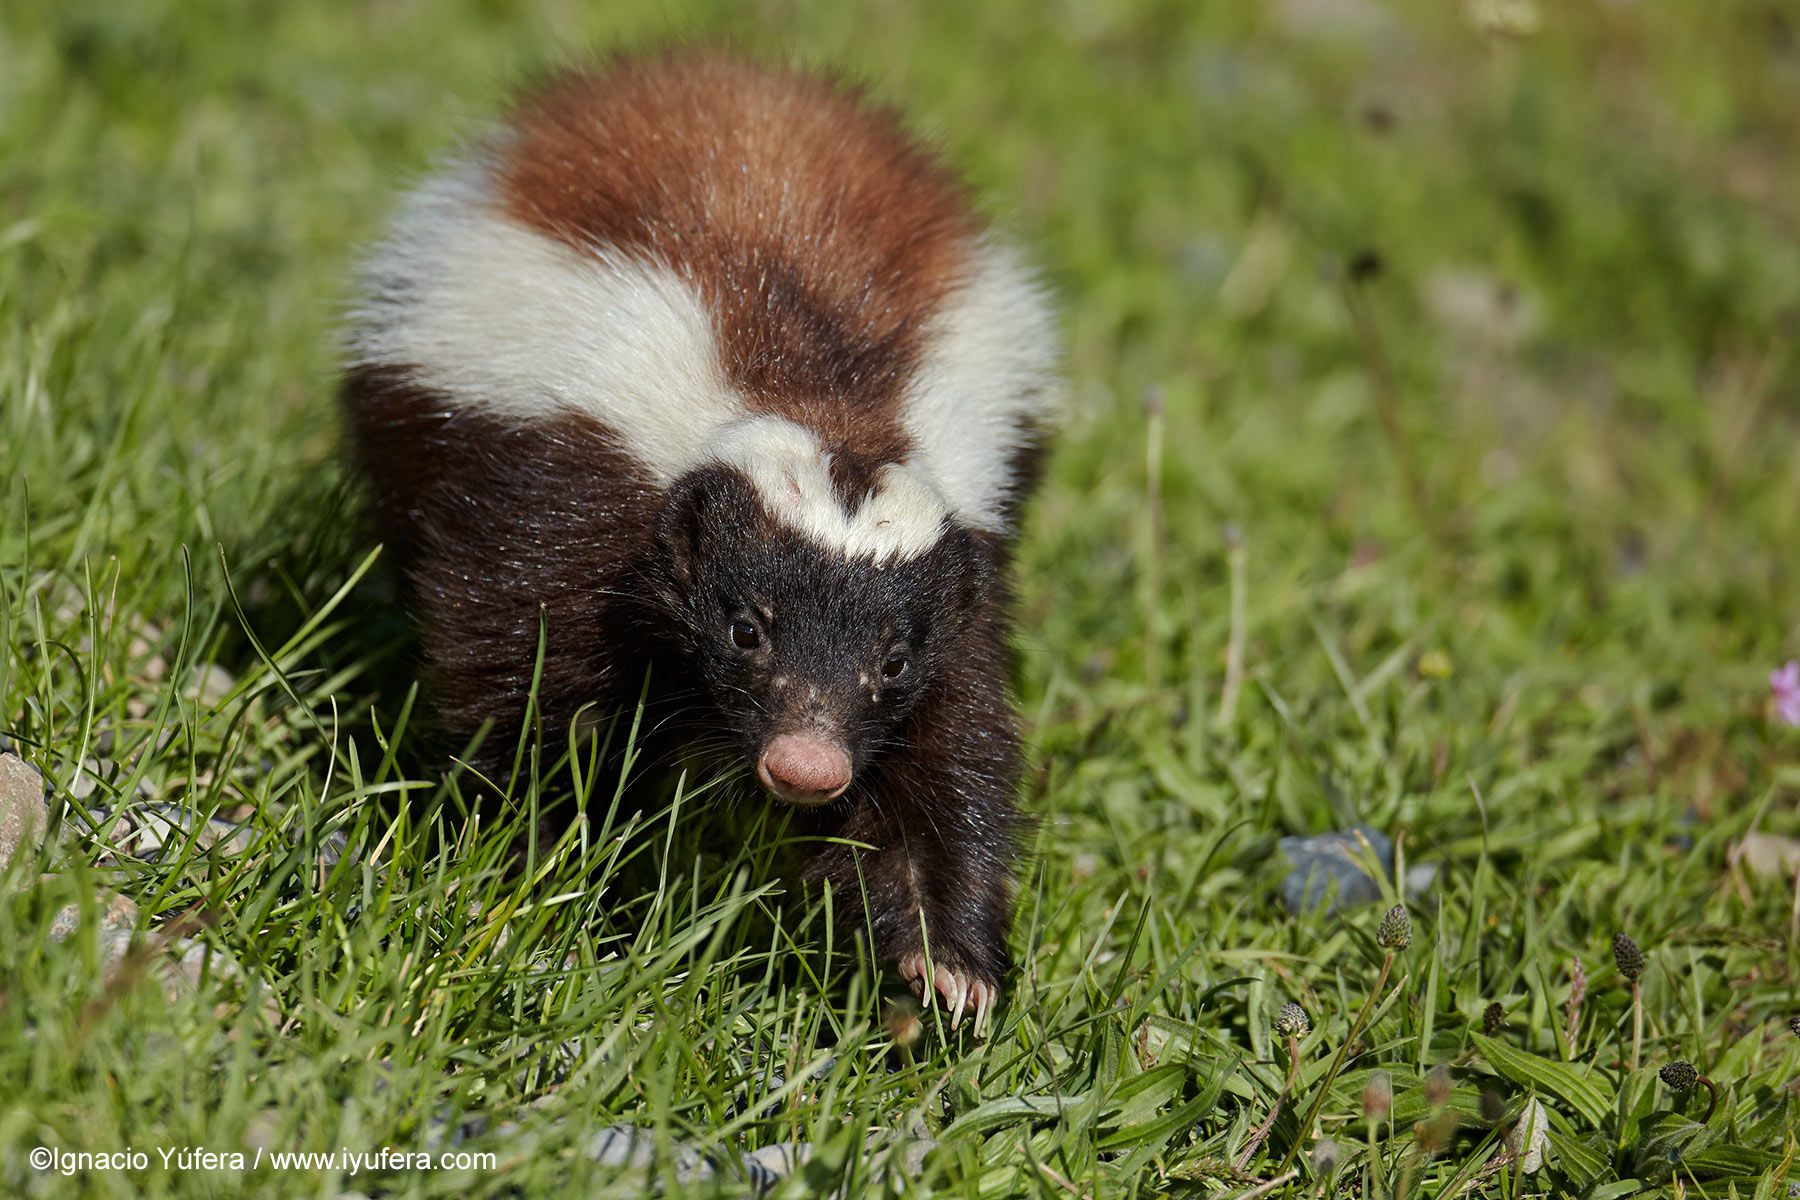 Patagonian Hog-nosed Skunk